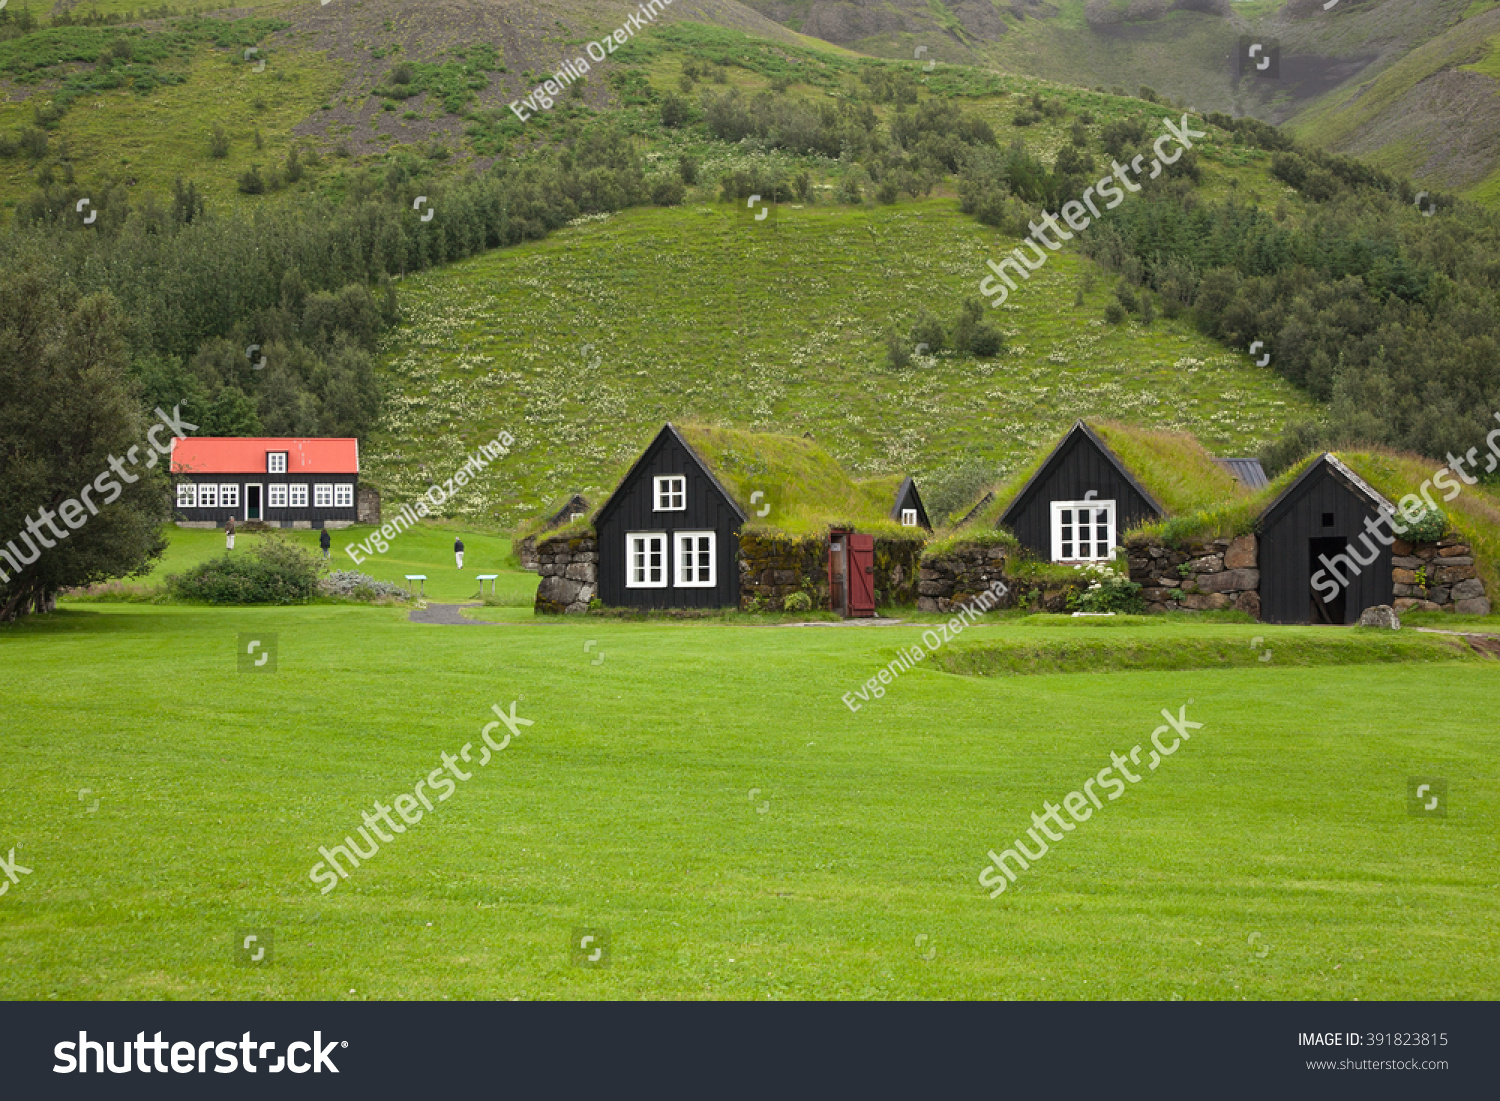 houses with grass roofs. Iceland